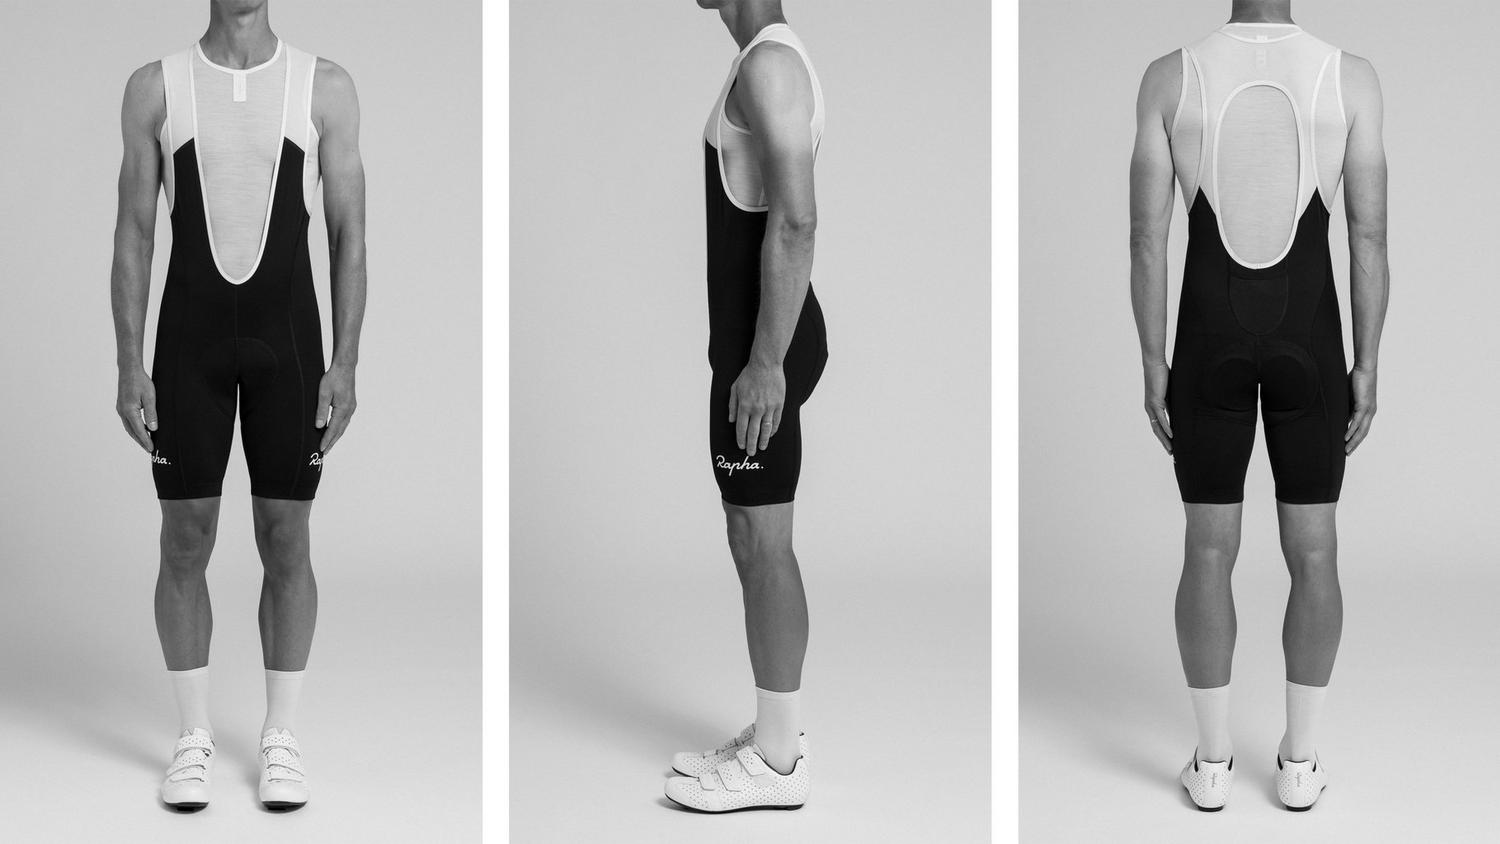 classic-bib-short-comparison.jpeg